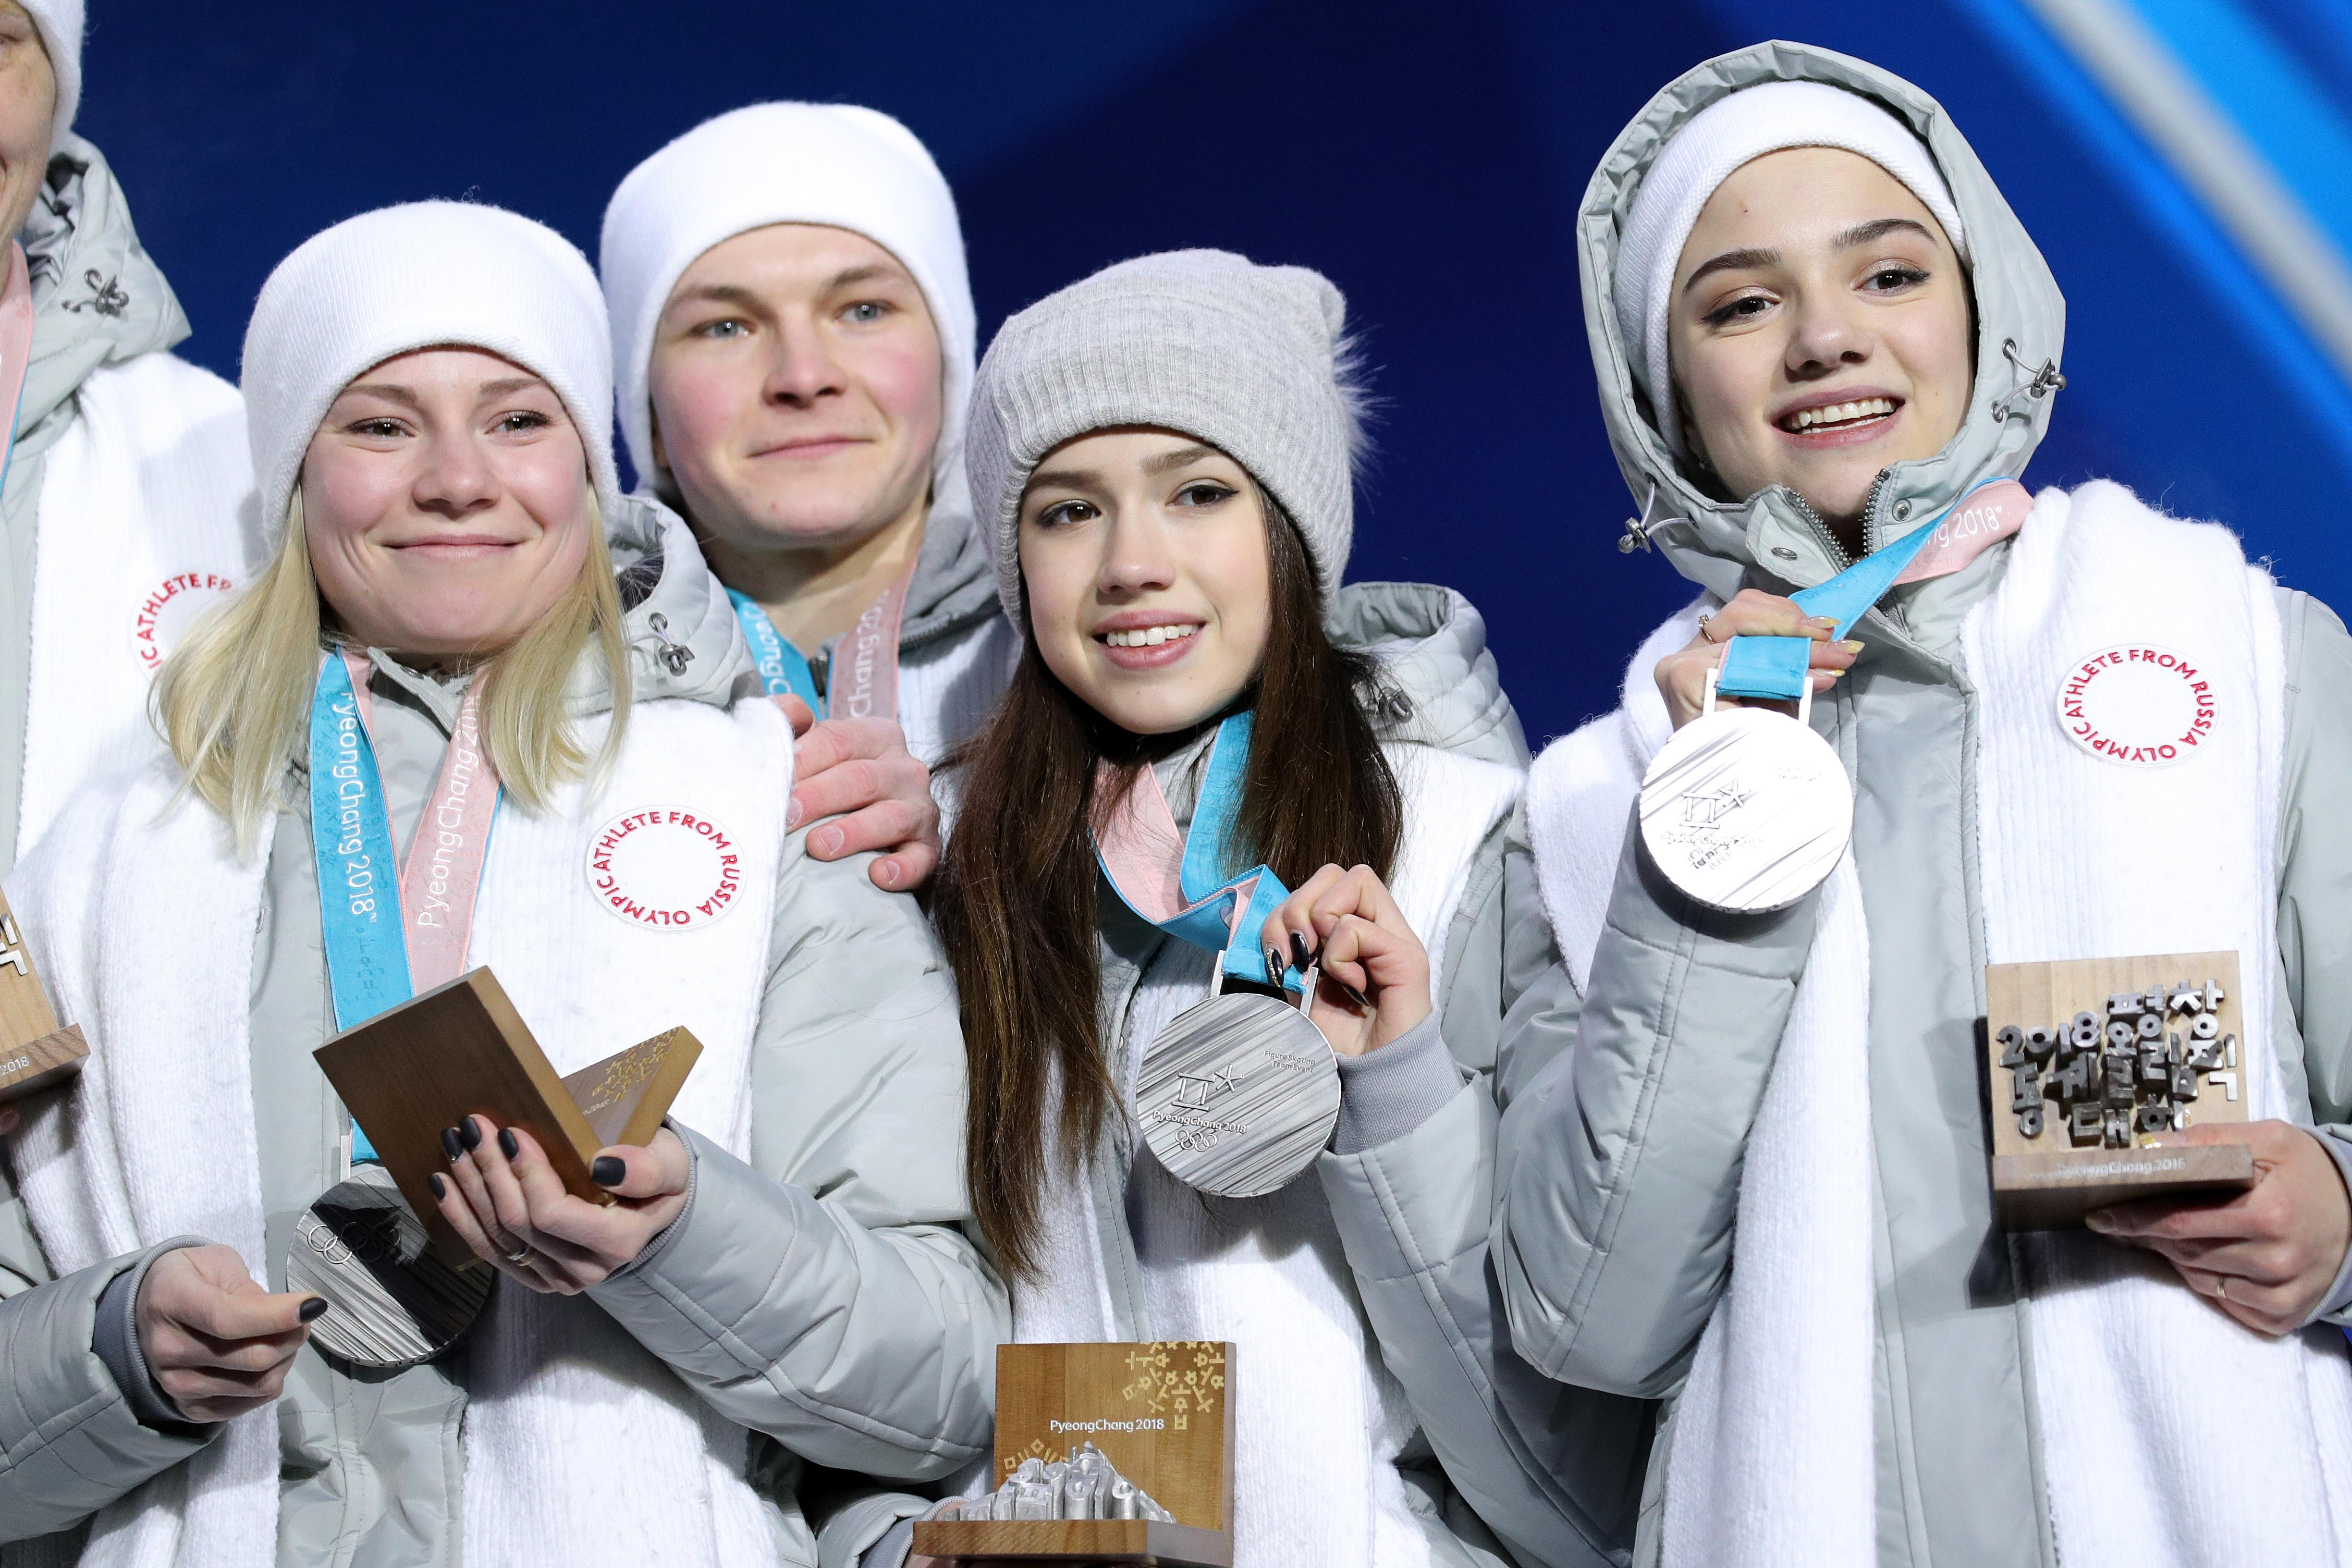 Four Olympic Athletes from Russia display the silver medals they won in the team figure skating event at the Pyeongchang Olympics.